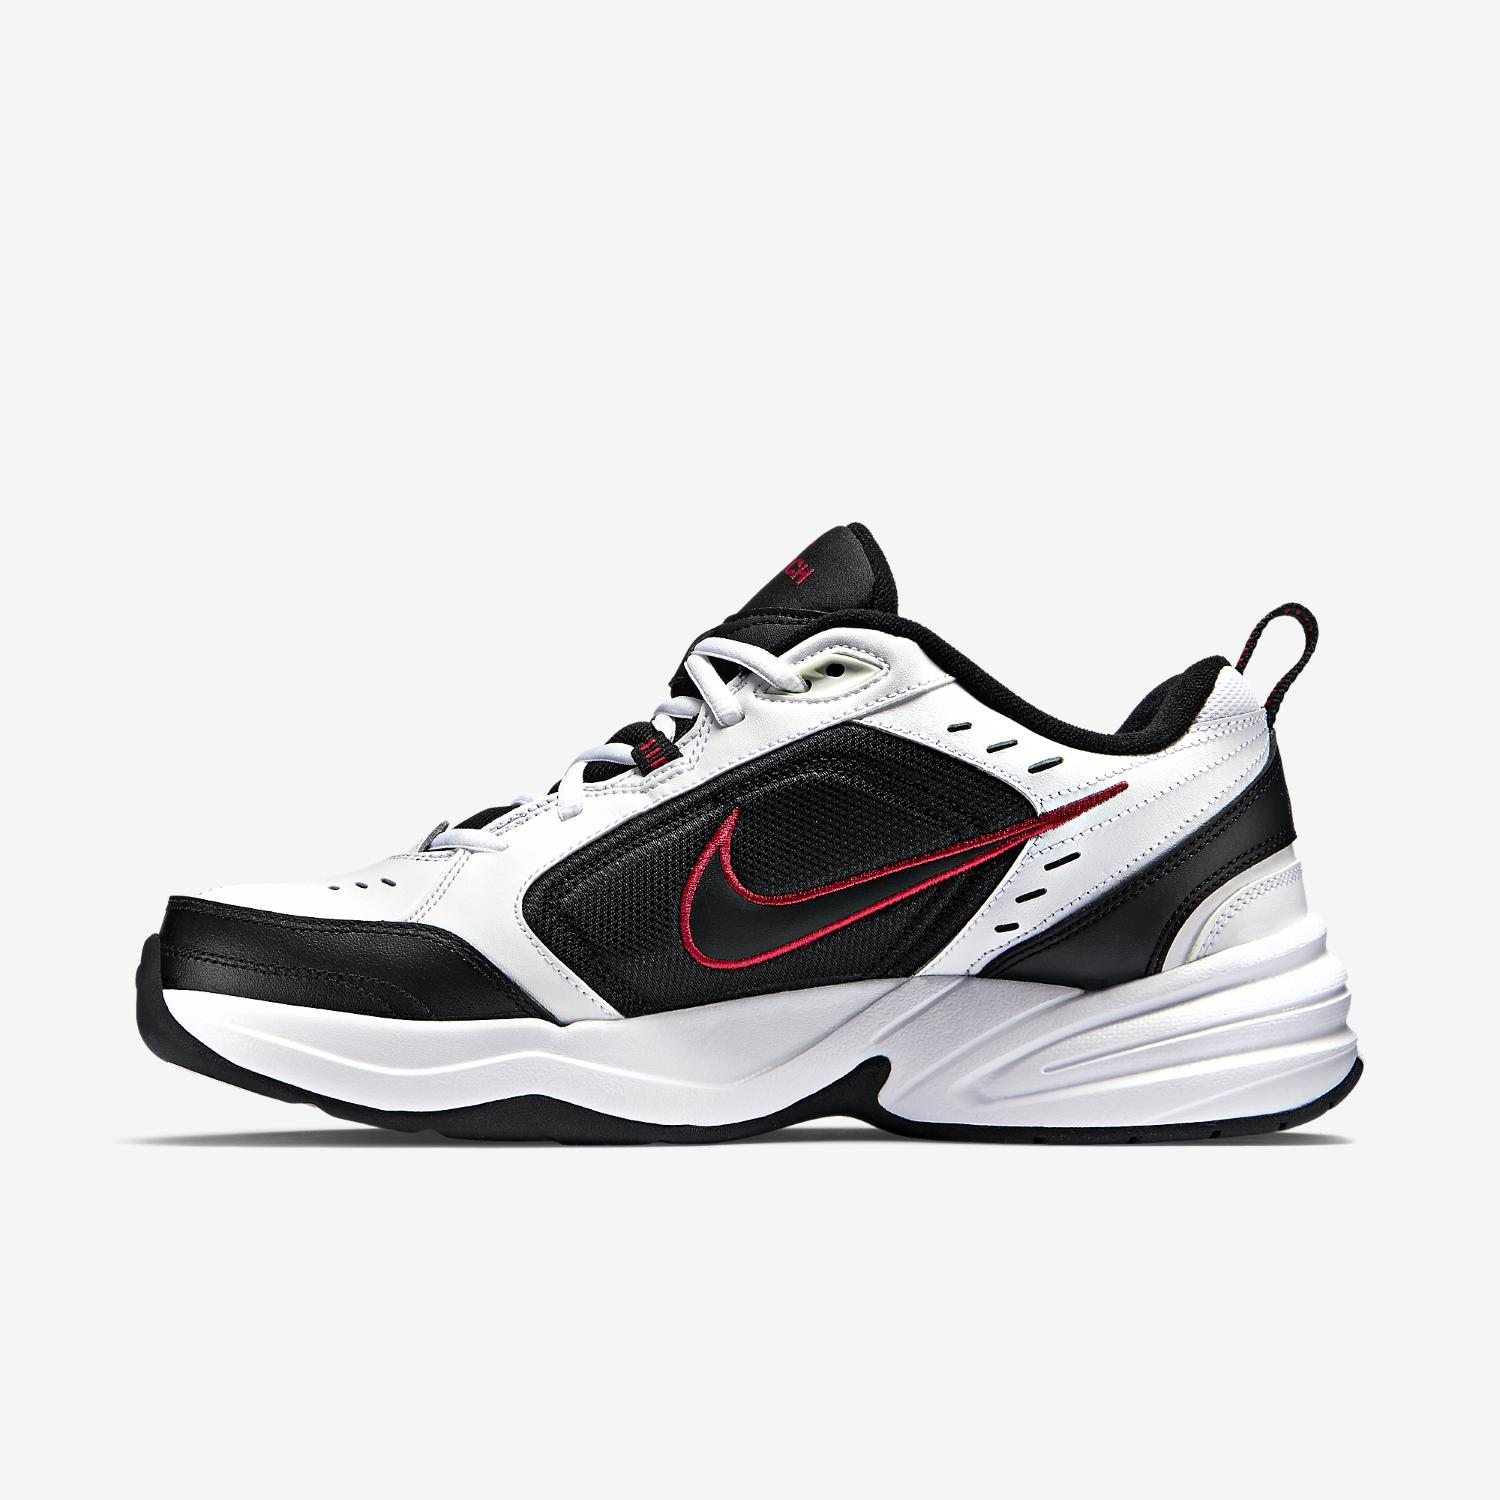 huge selection of daf6b b8064 Nike - Multicolor Air Monarch Iv Fitness Shoes for Men - Lyst. View  fullscreen